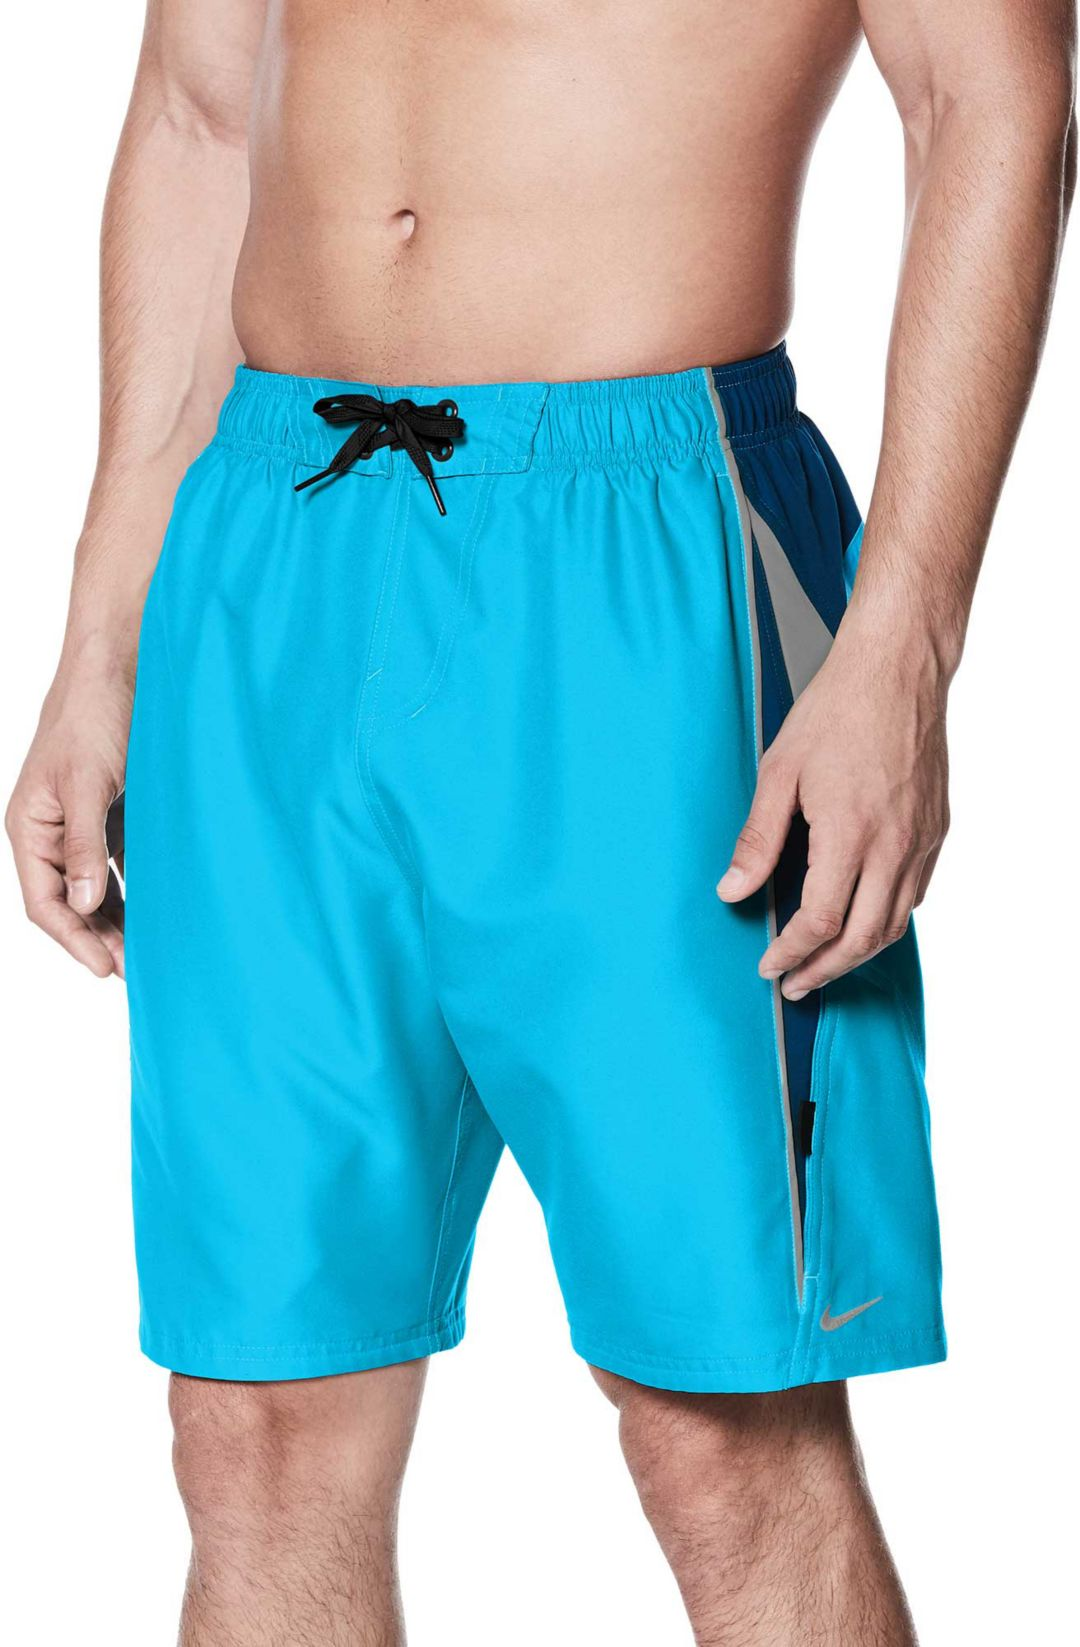 584d0457519ed Nike Men's Core Contend Board Shorts | DICK'S Sporting Goods